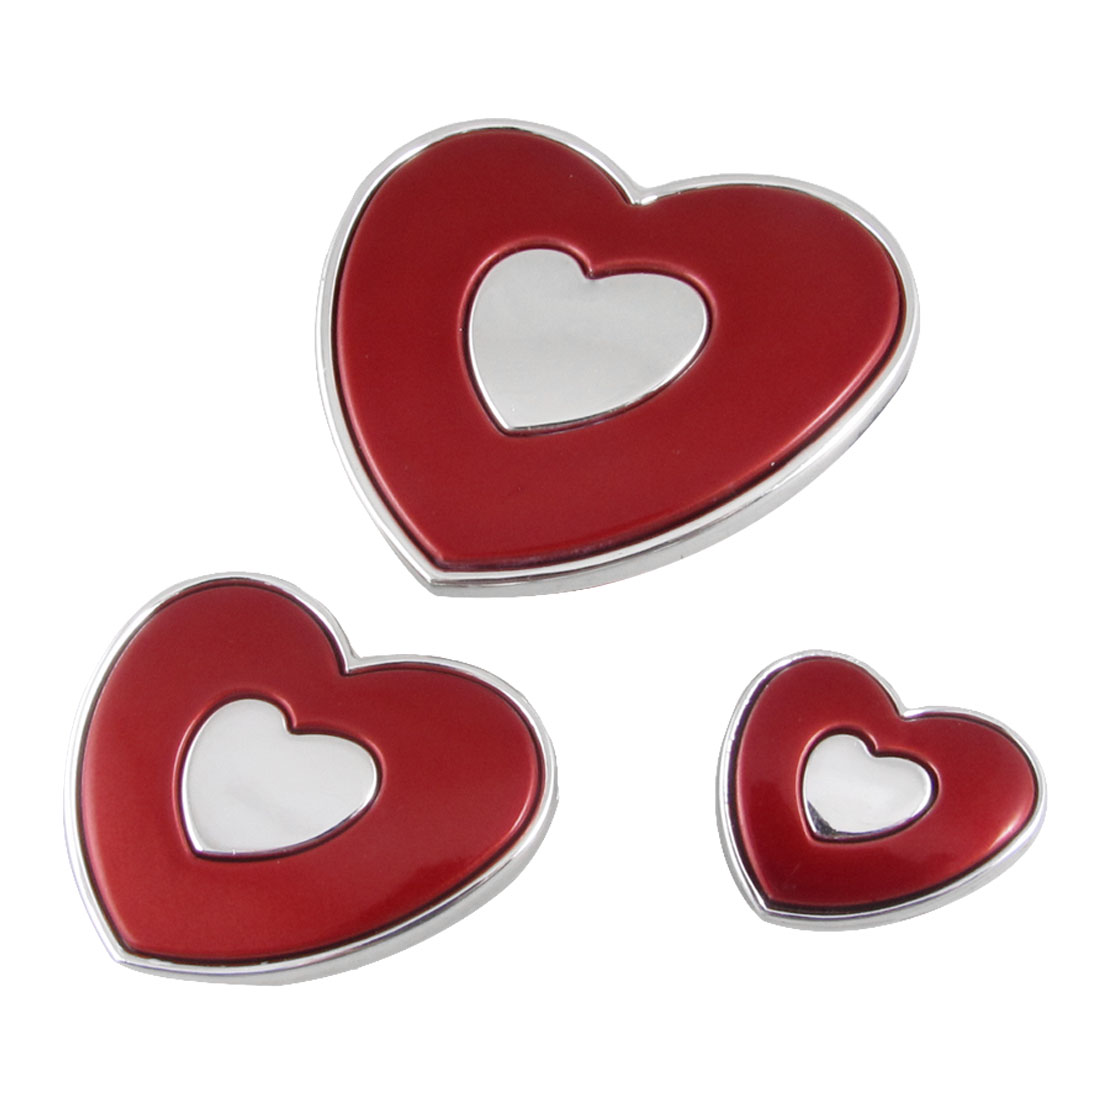 3 Pcs Decorative Red Heart Slim Door Guard Protector for Auto Car Truck